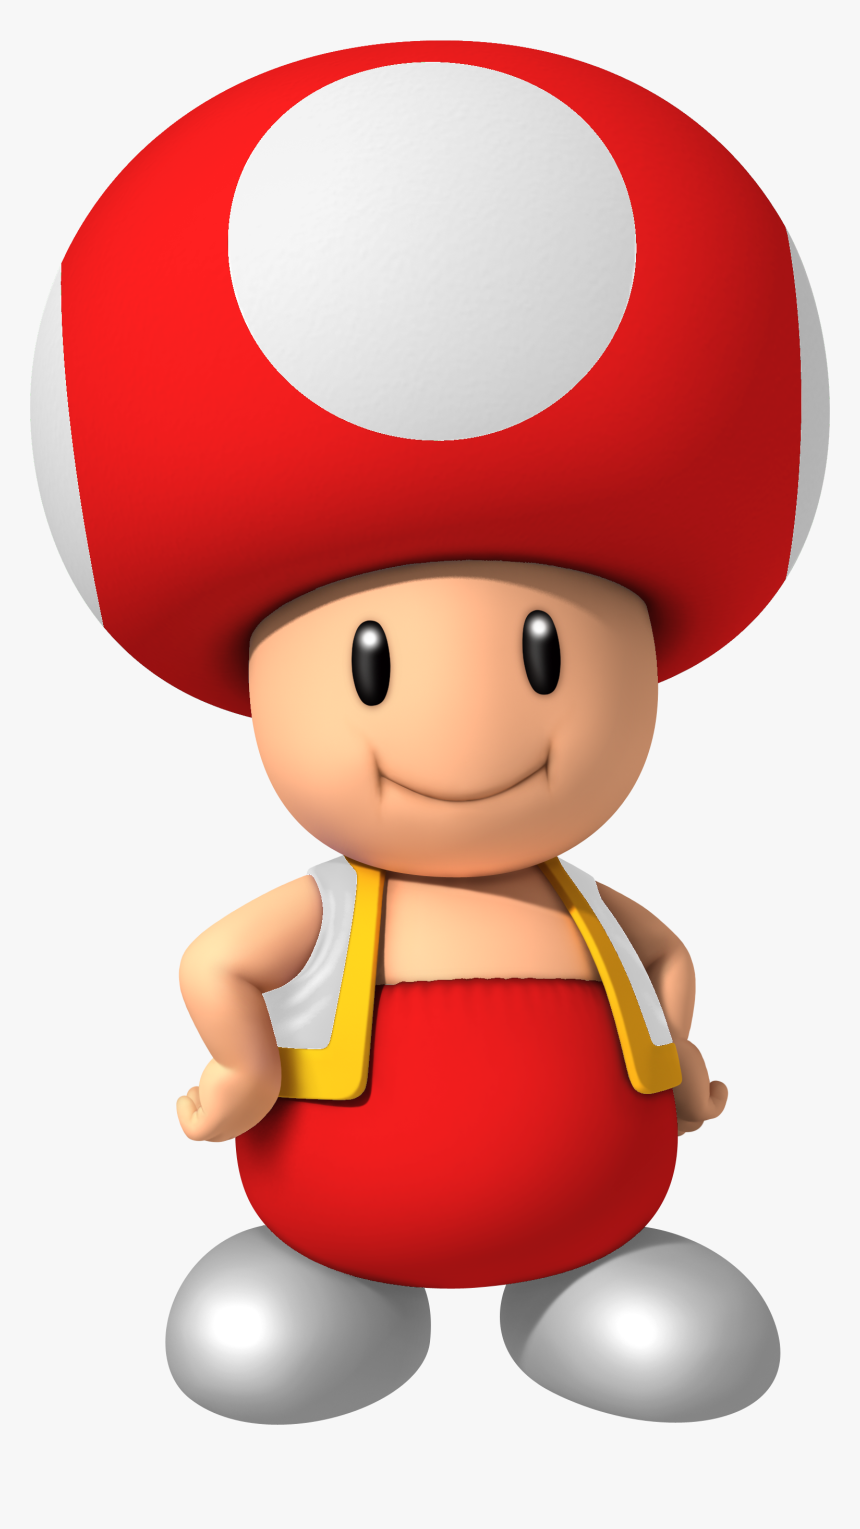 Super Mario Mushroom Png Red Toad From Mario Transparent Png